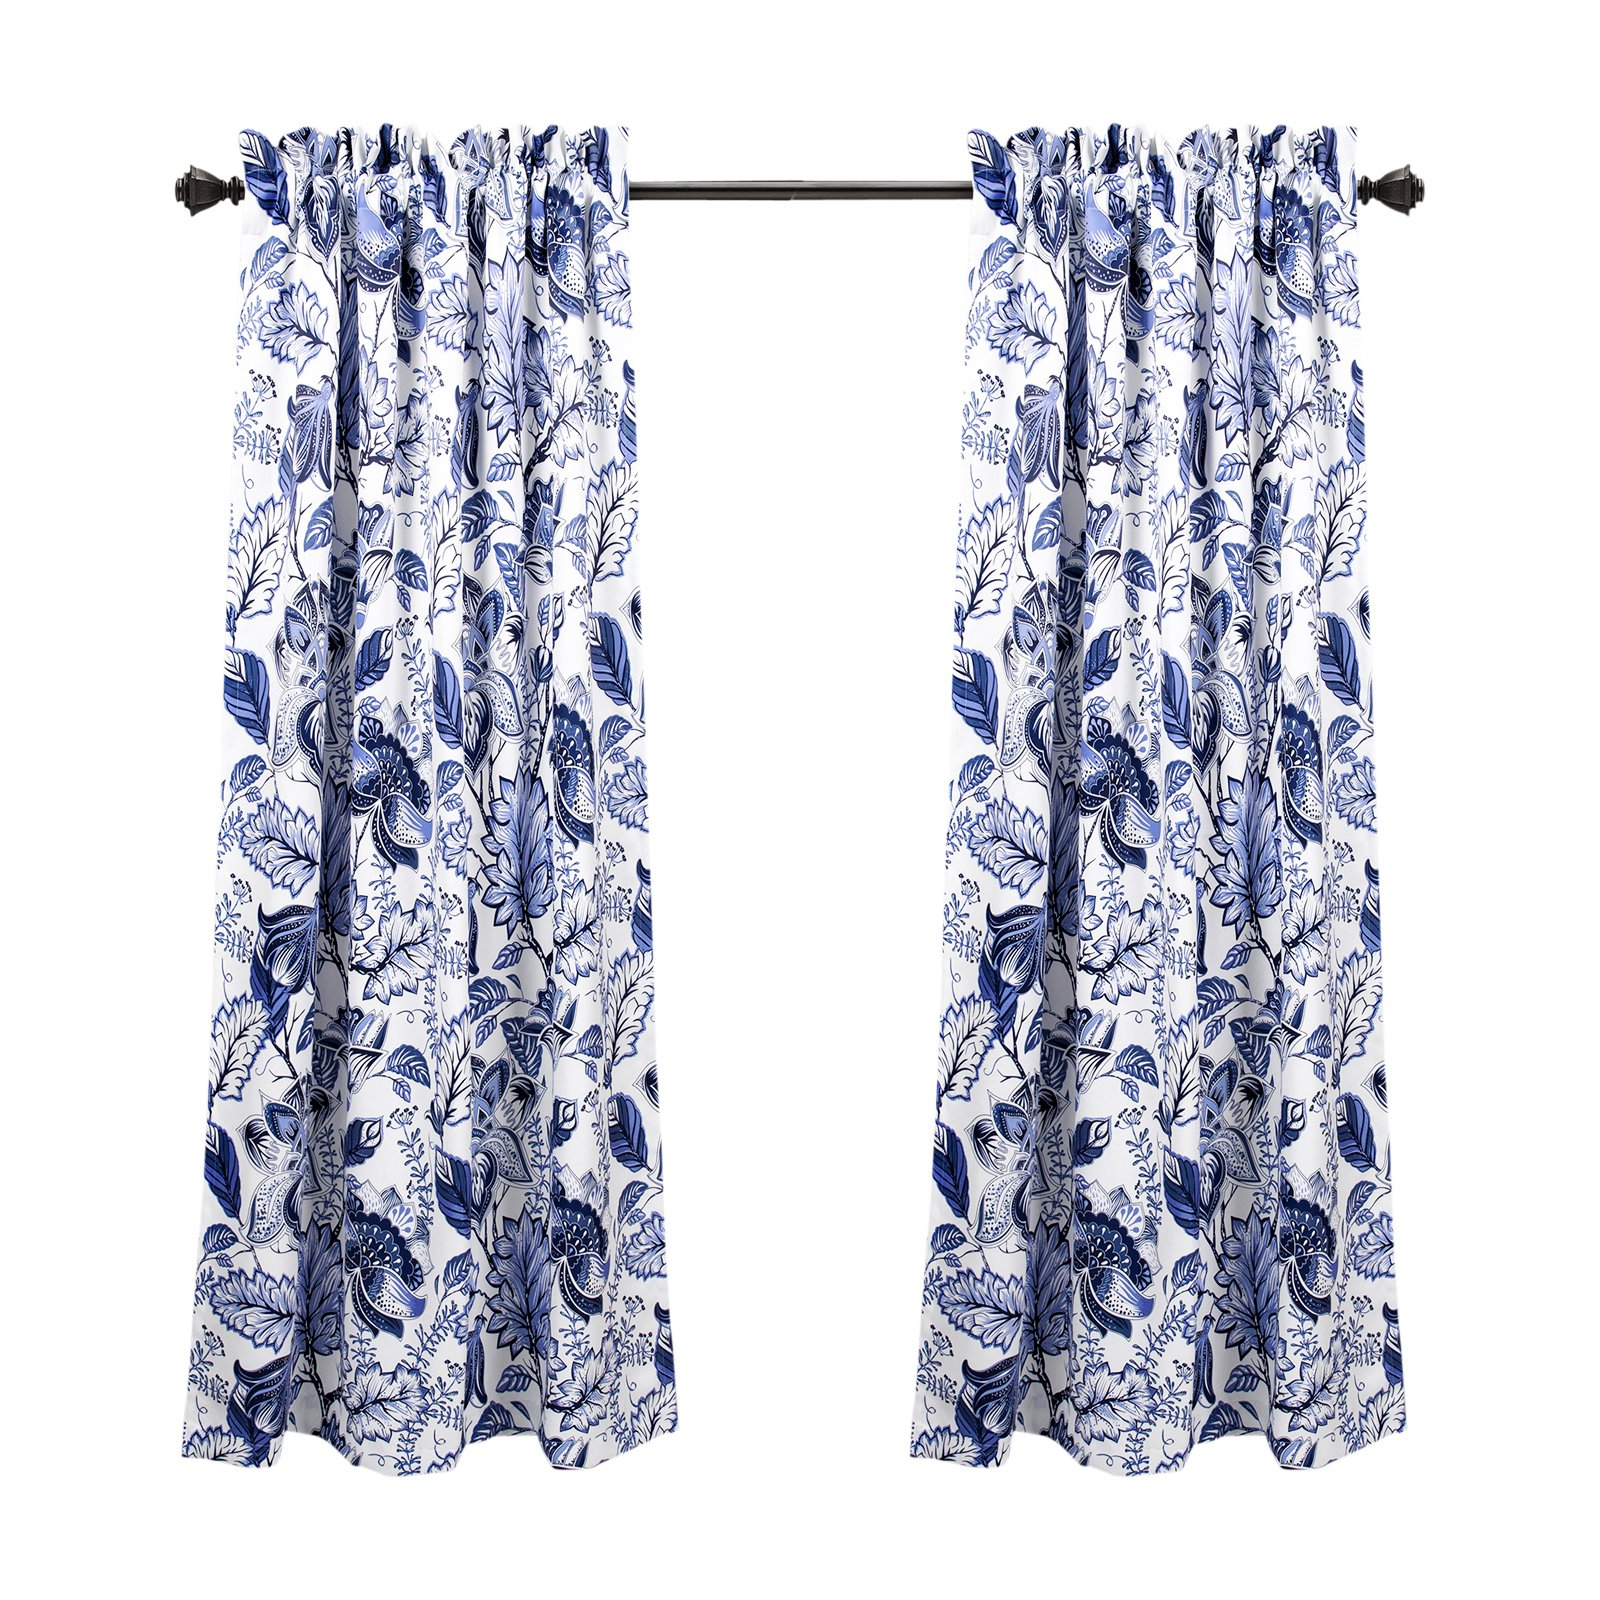 Lush Decor Cynthia Jacobean Panel Pair In 2019 | Products Intended For Cynthia Jacobean Room Darkening Curtain Panel Pairs (View 13 of 20)